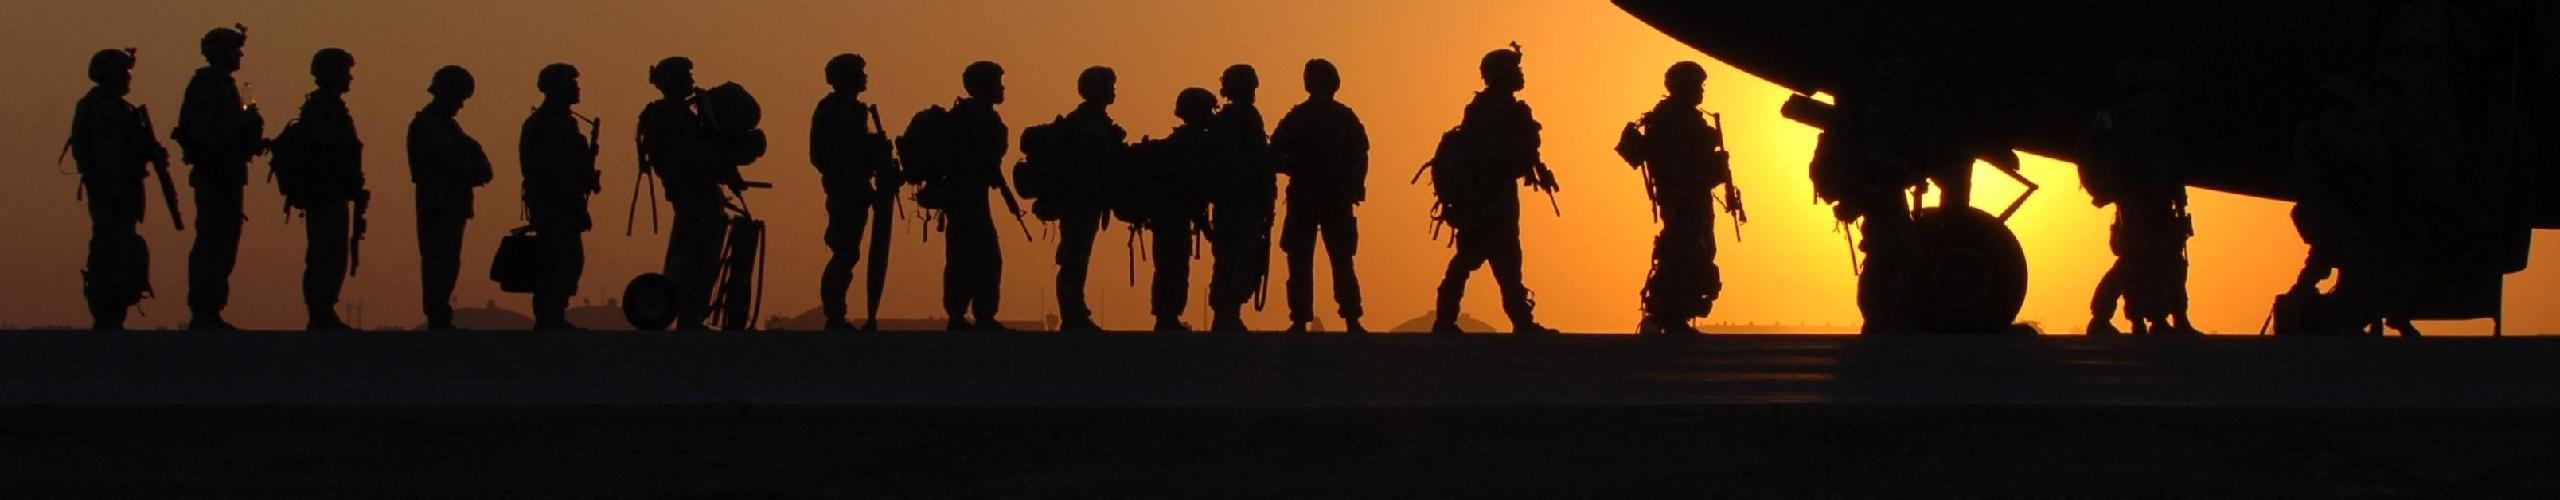 Picture of soldiers.